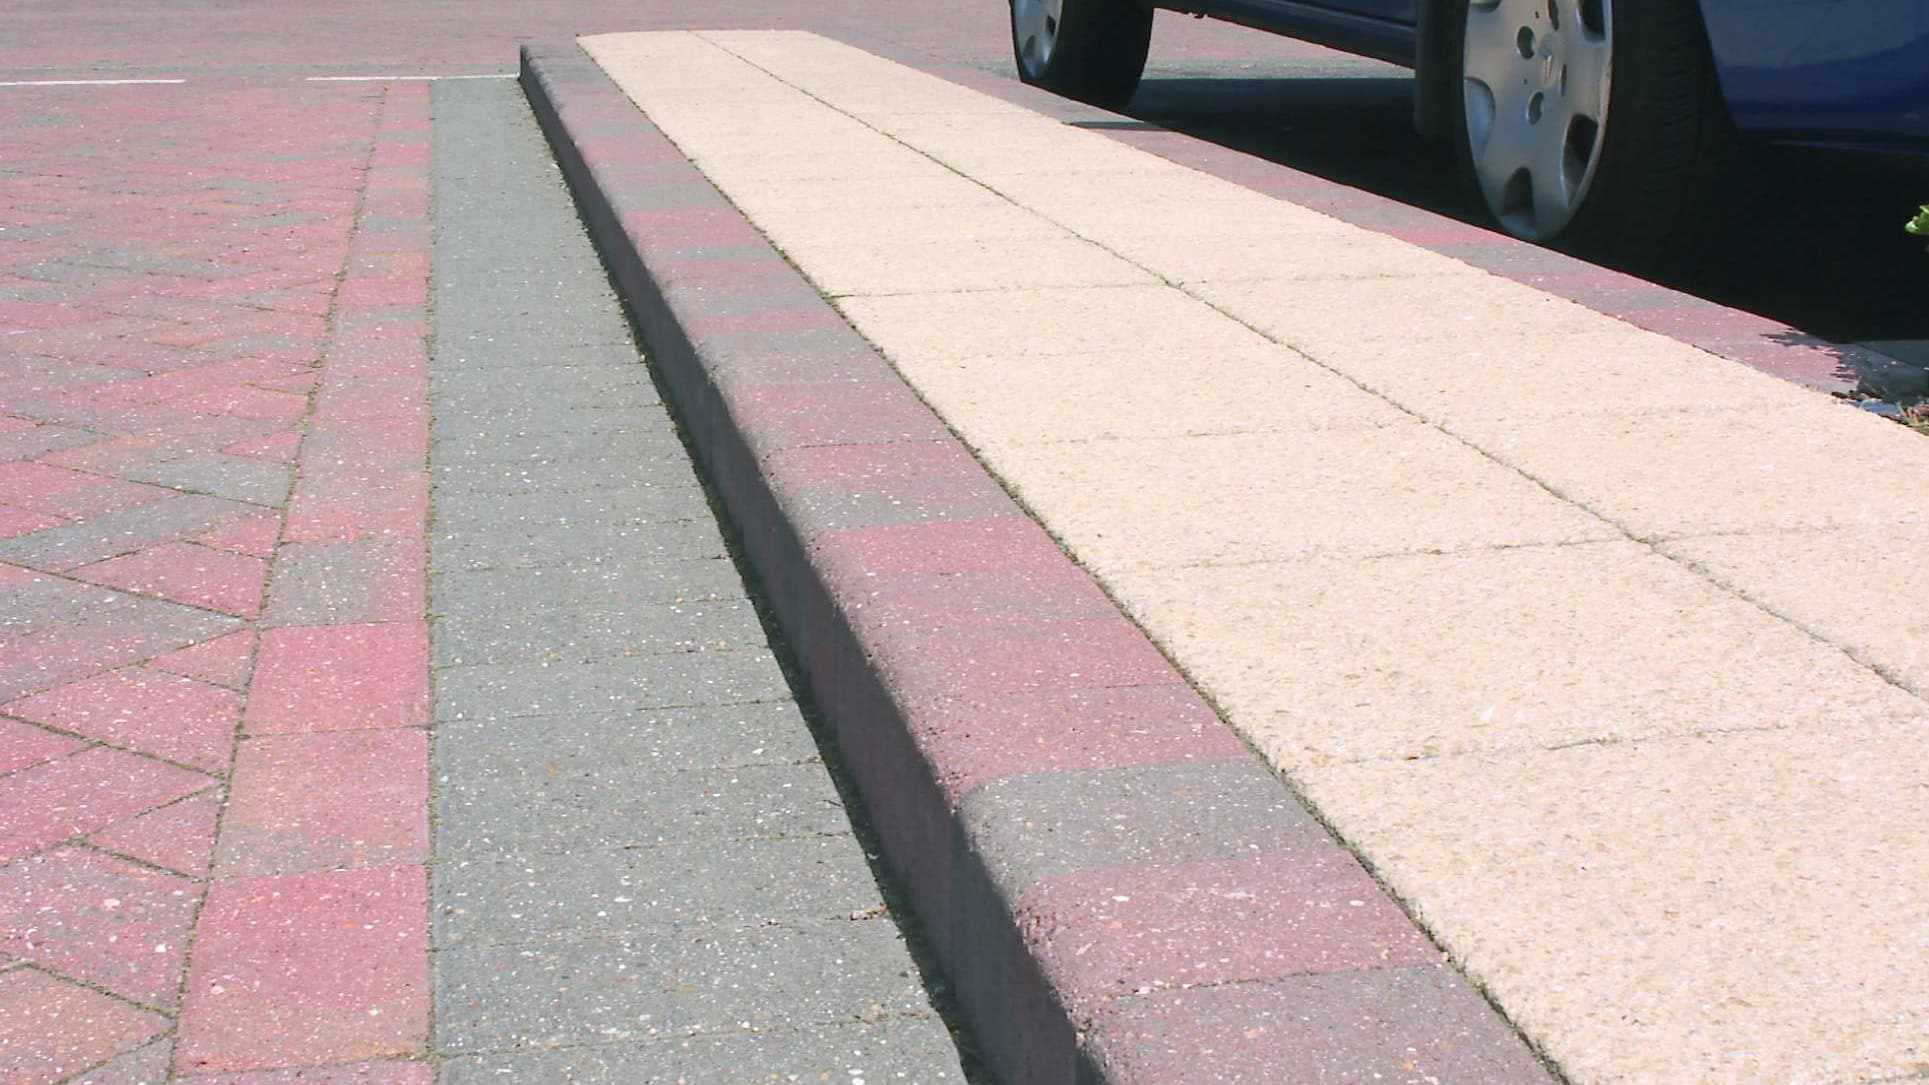 British standard kerb in a car park